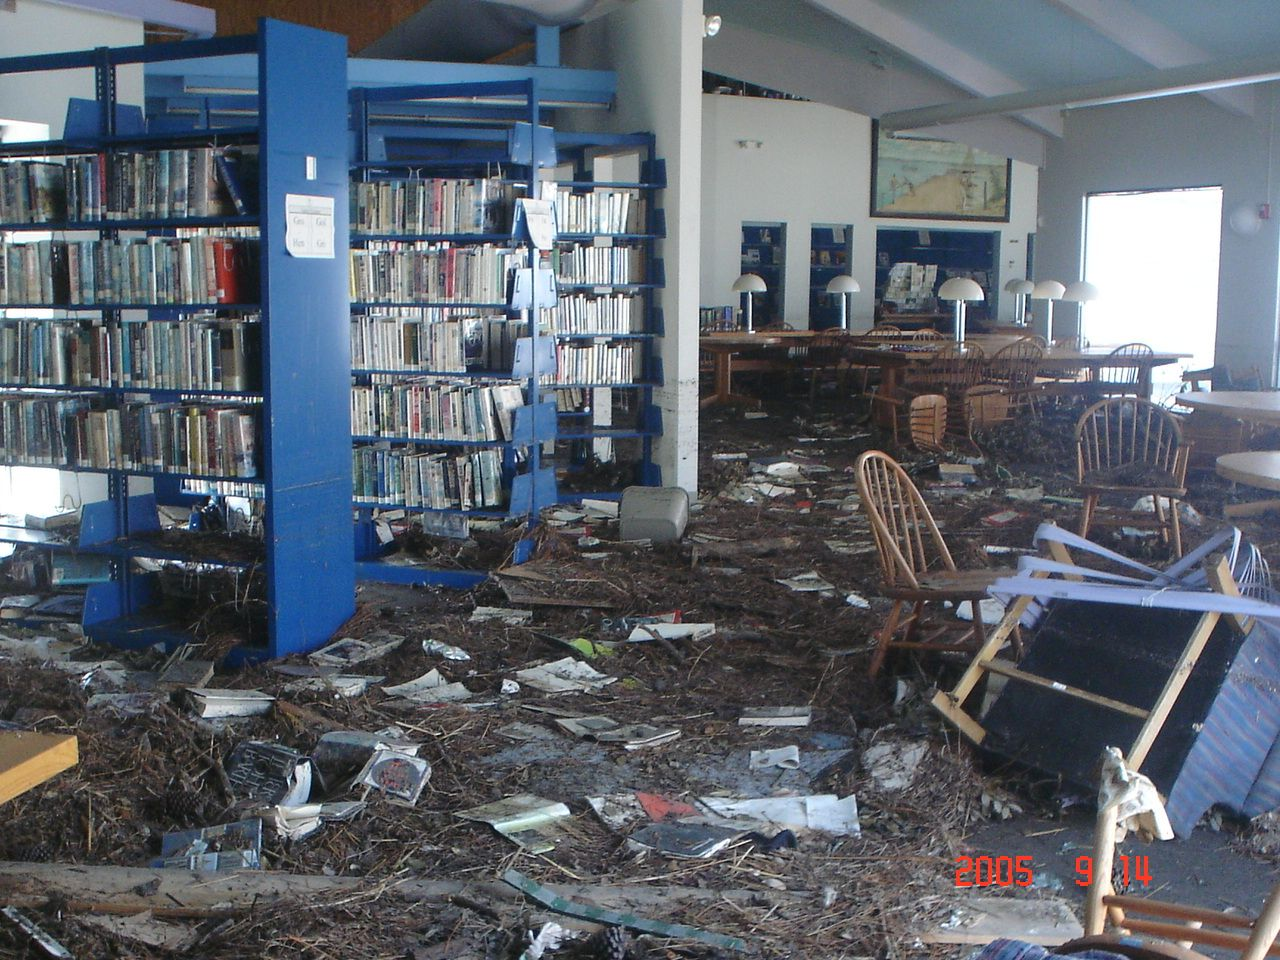 Photos Of Damage In Mississippi From Hurricane Katrina Disaster Plan Disaster Preparedness Abandoned Library